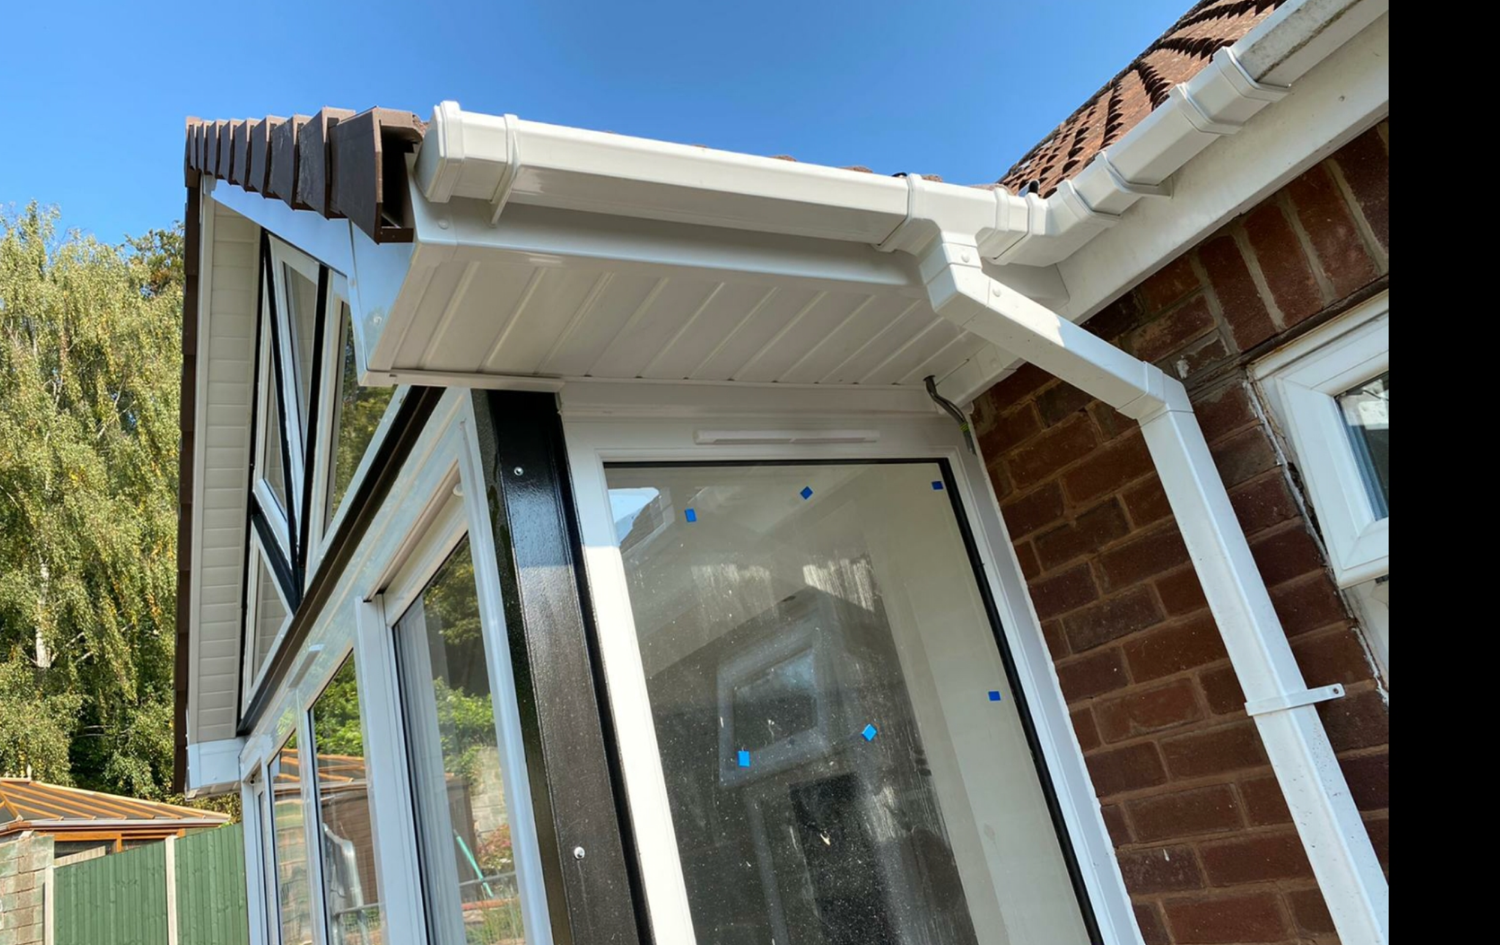 You will see the new fascia, soffit, guttering and down pipe fitted and connected to the original part of the bungalow.